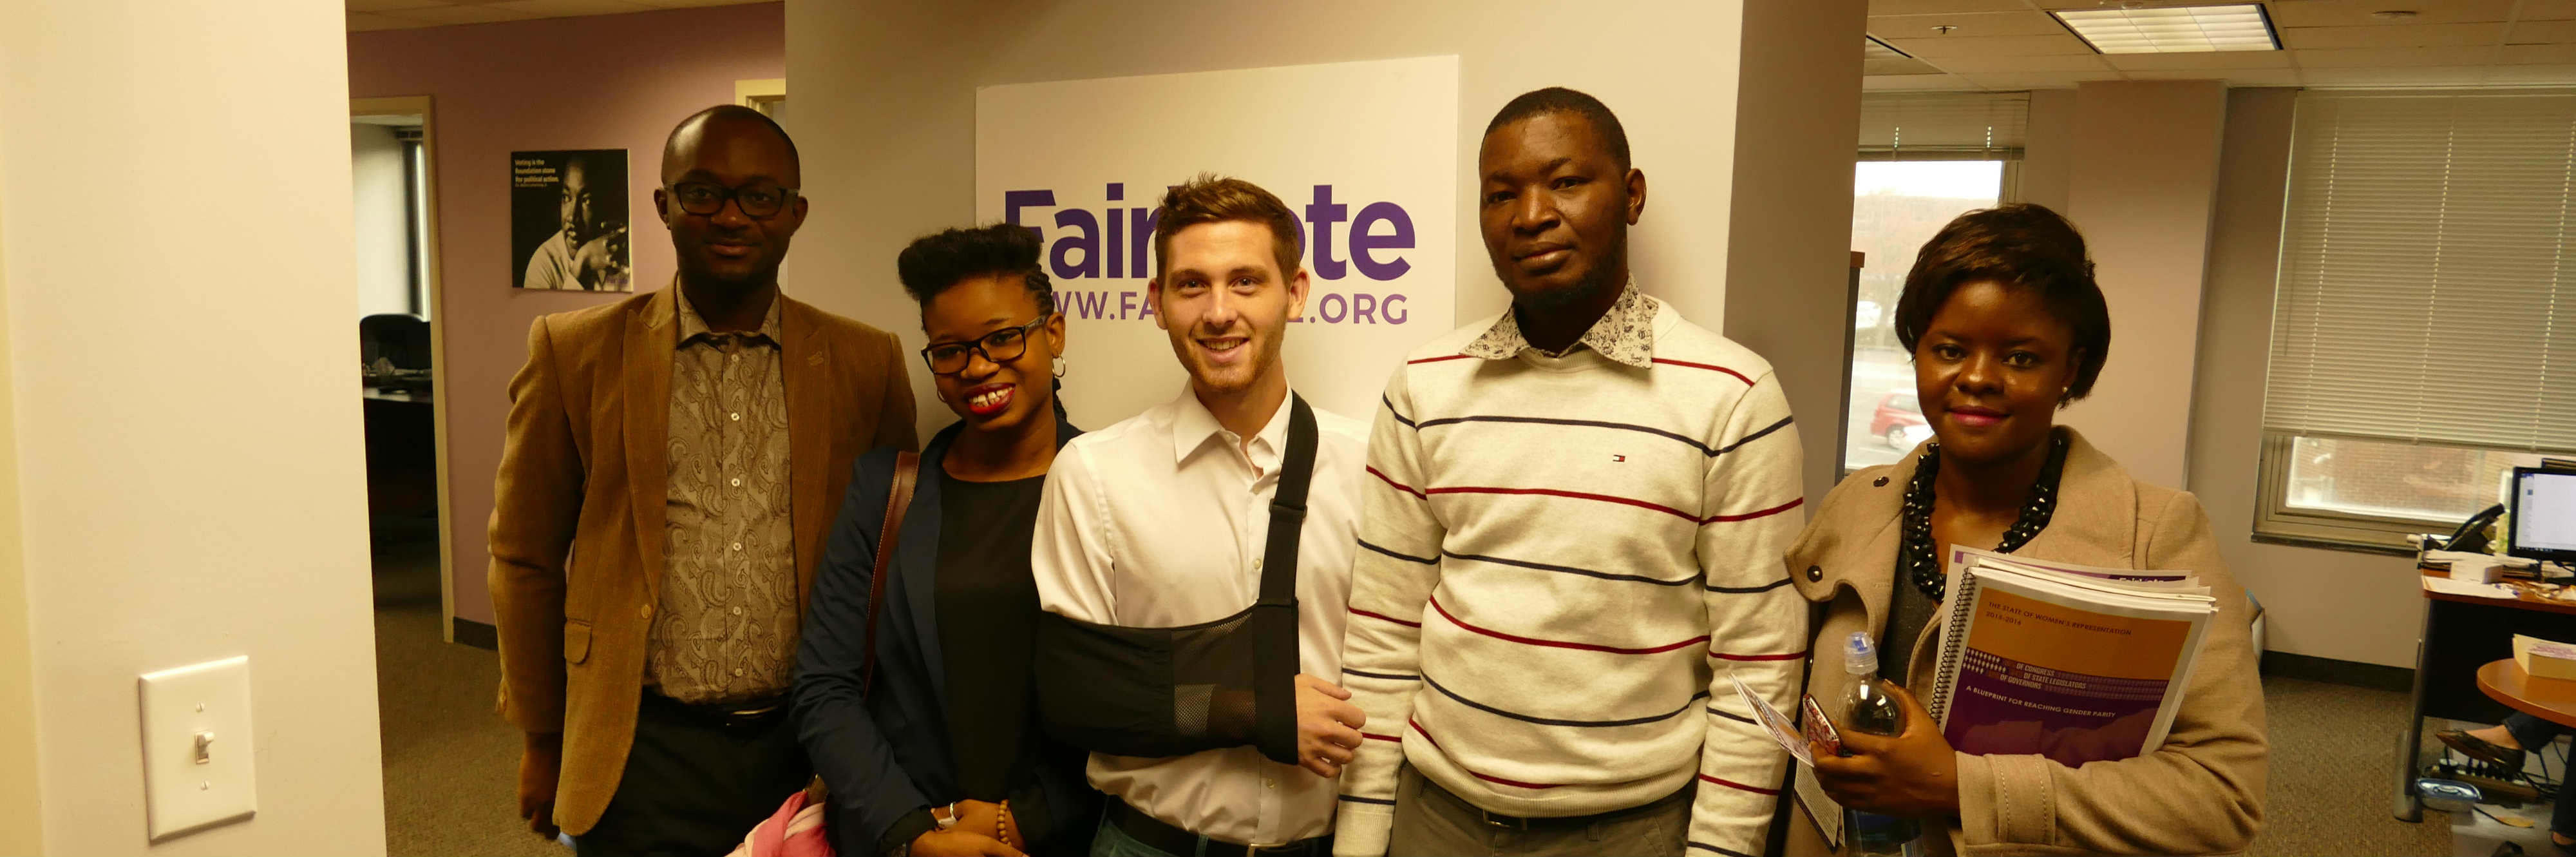 International Democracy Organizations Visit FairVote